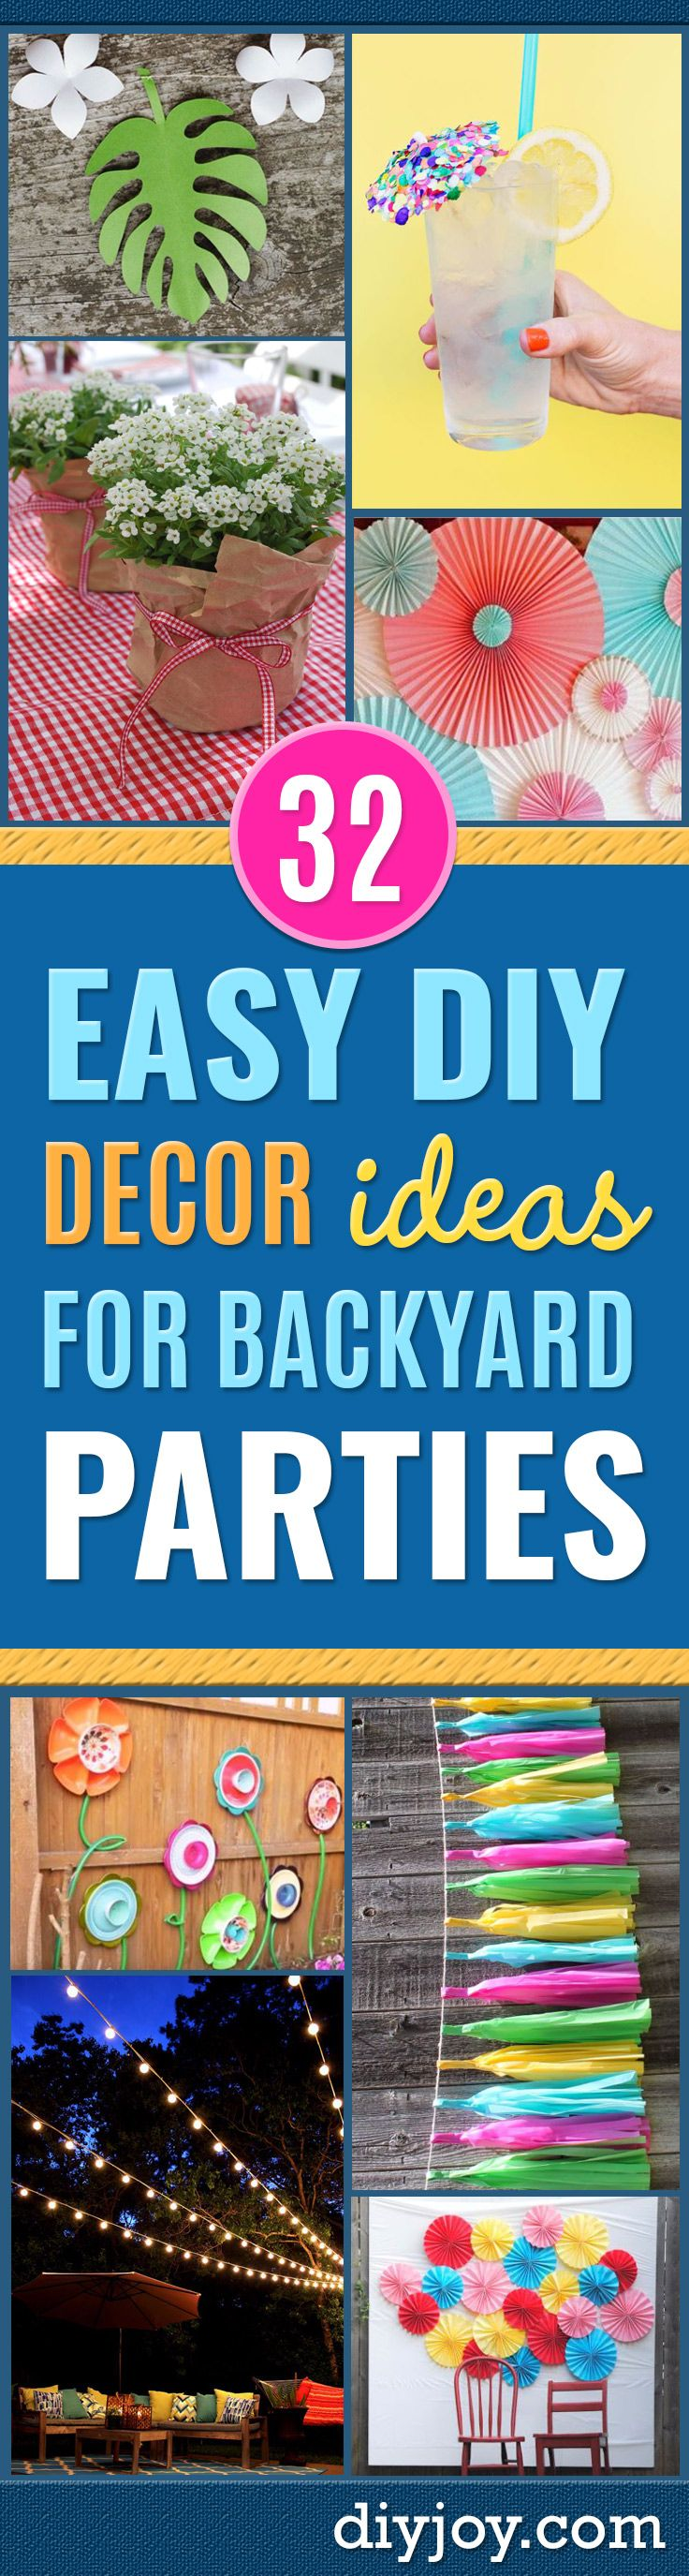 32 Easy Diy Decor Ideas For Backyard Parties